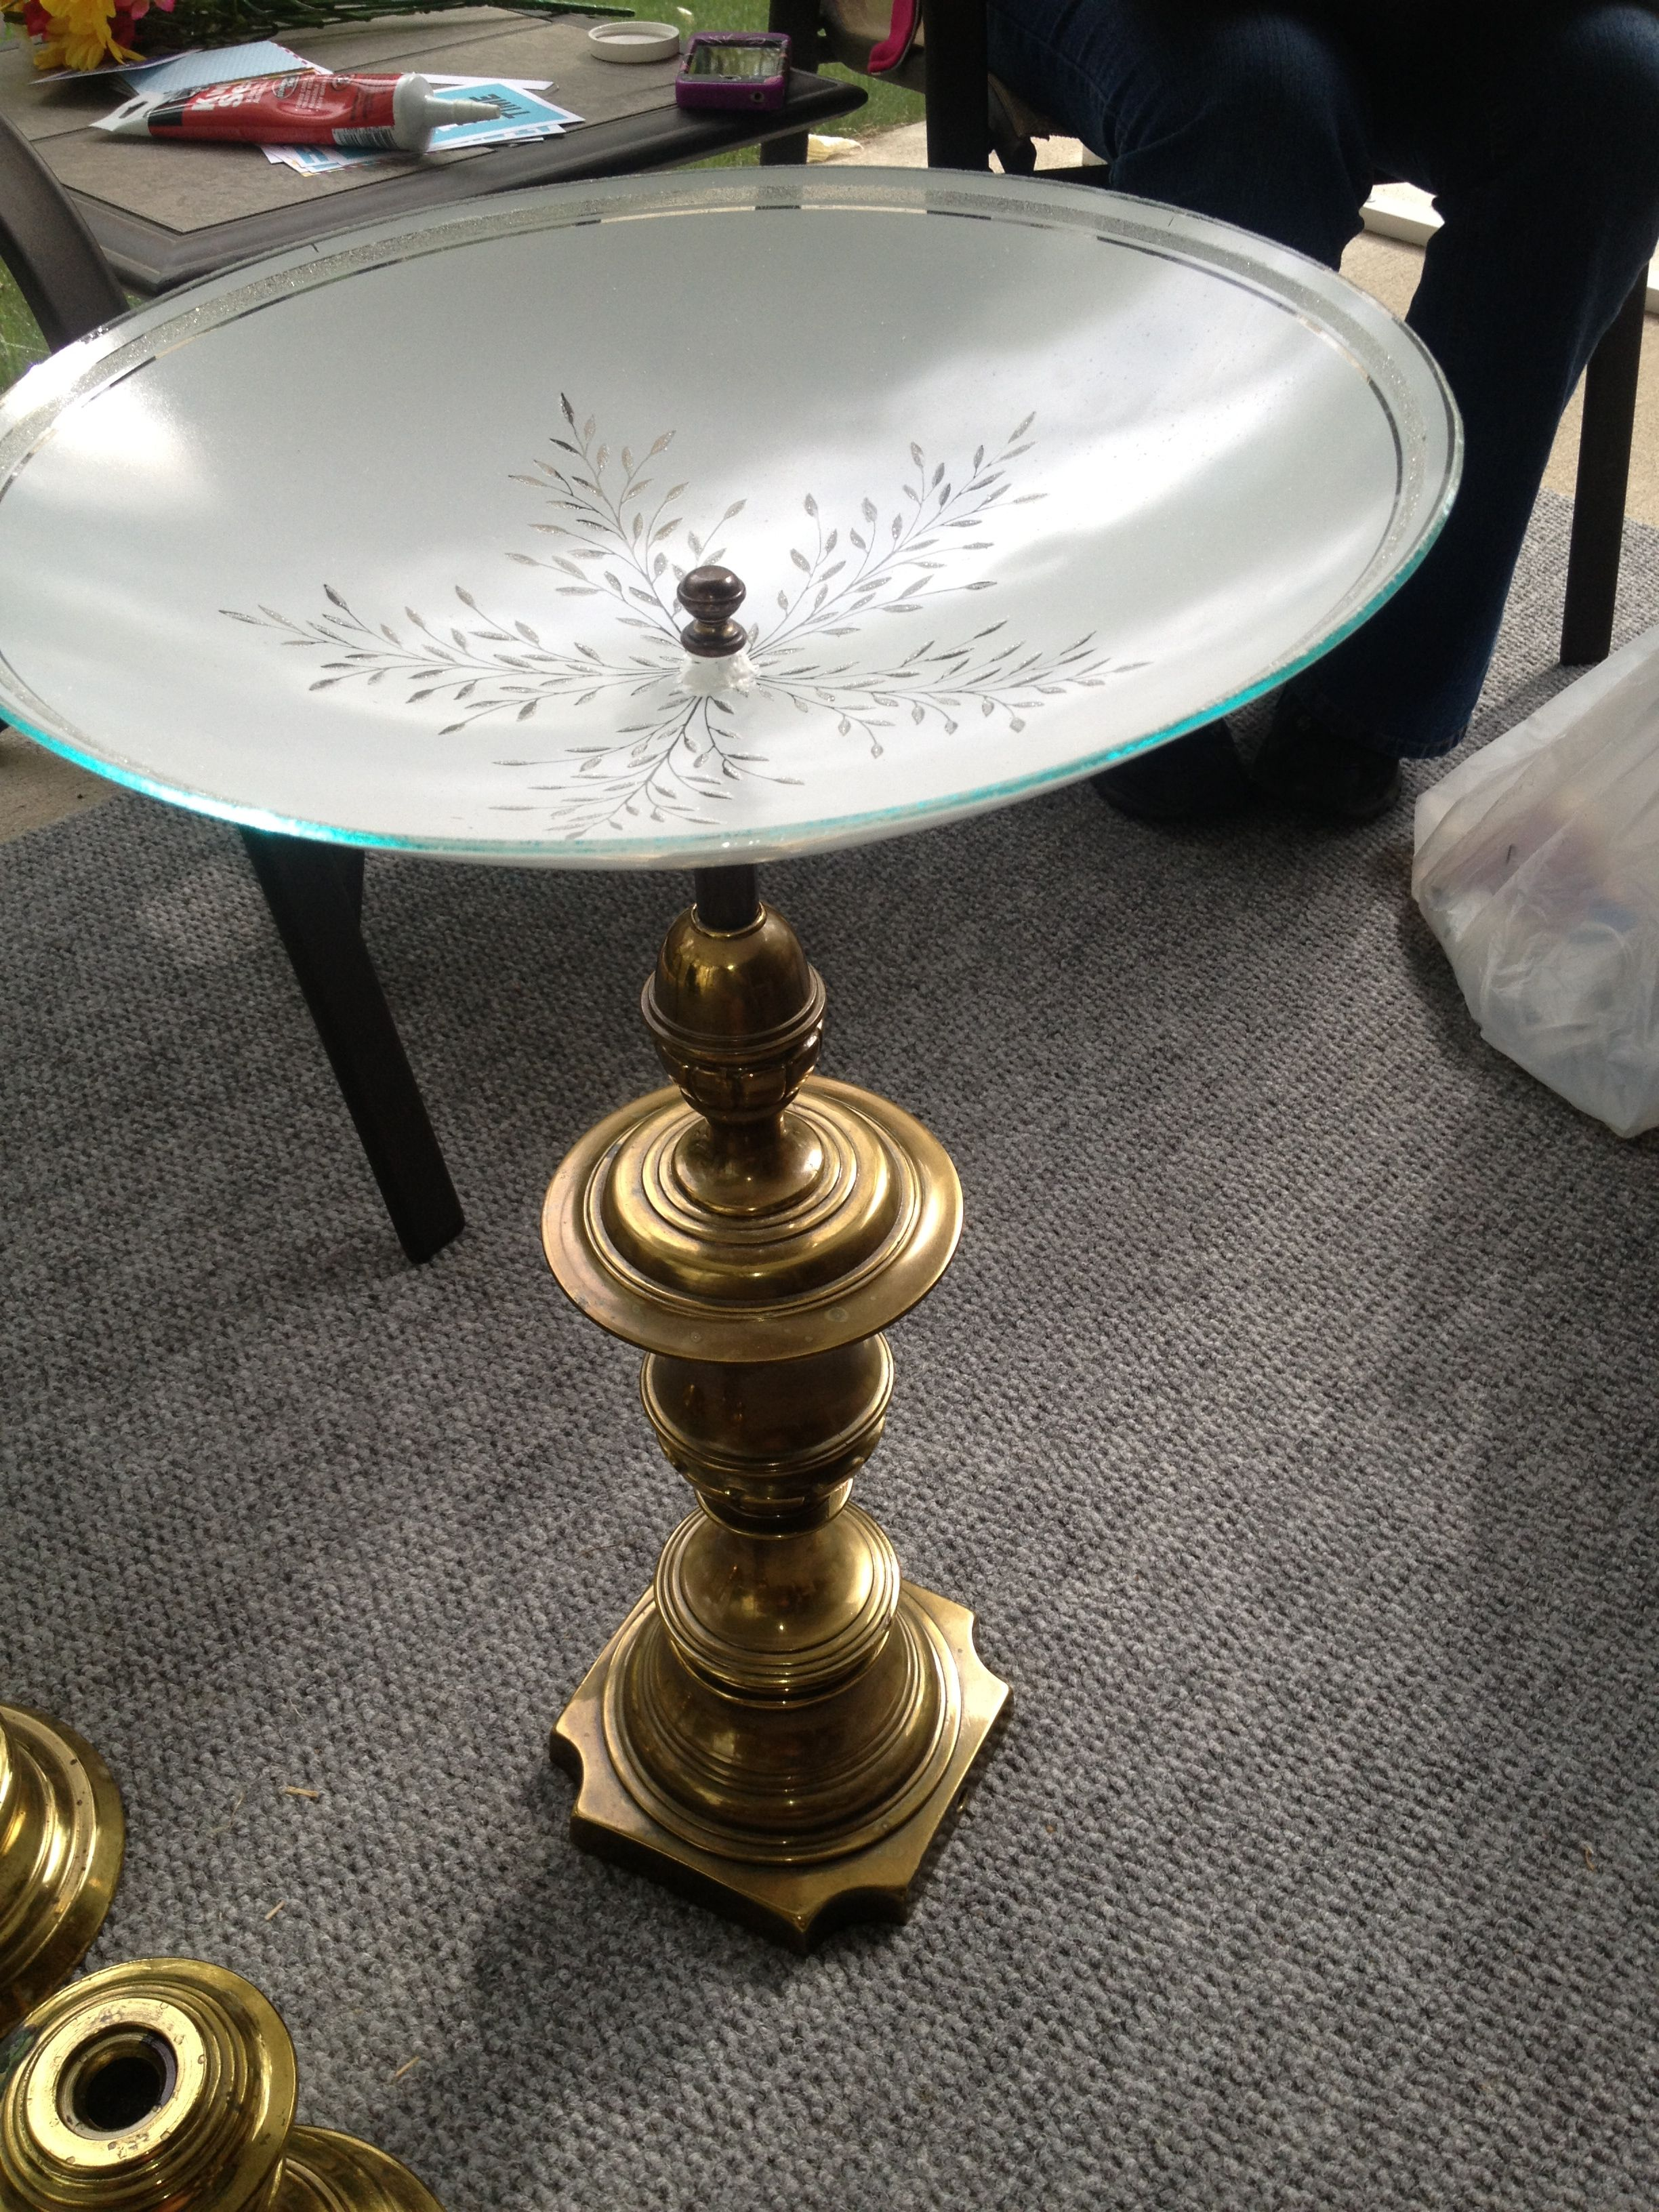 Repurposed Lamp And Ceiling Light Fixture Into A Bird Bath